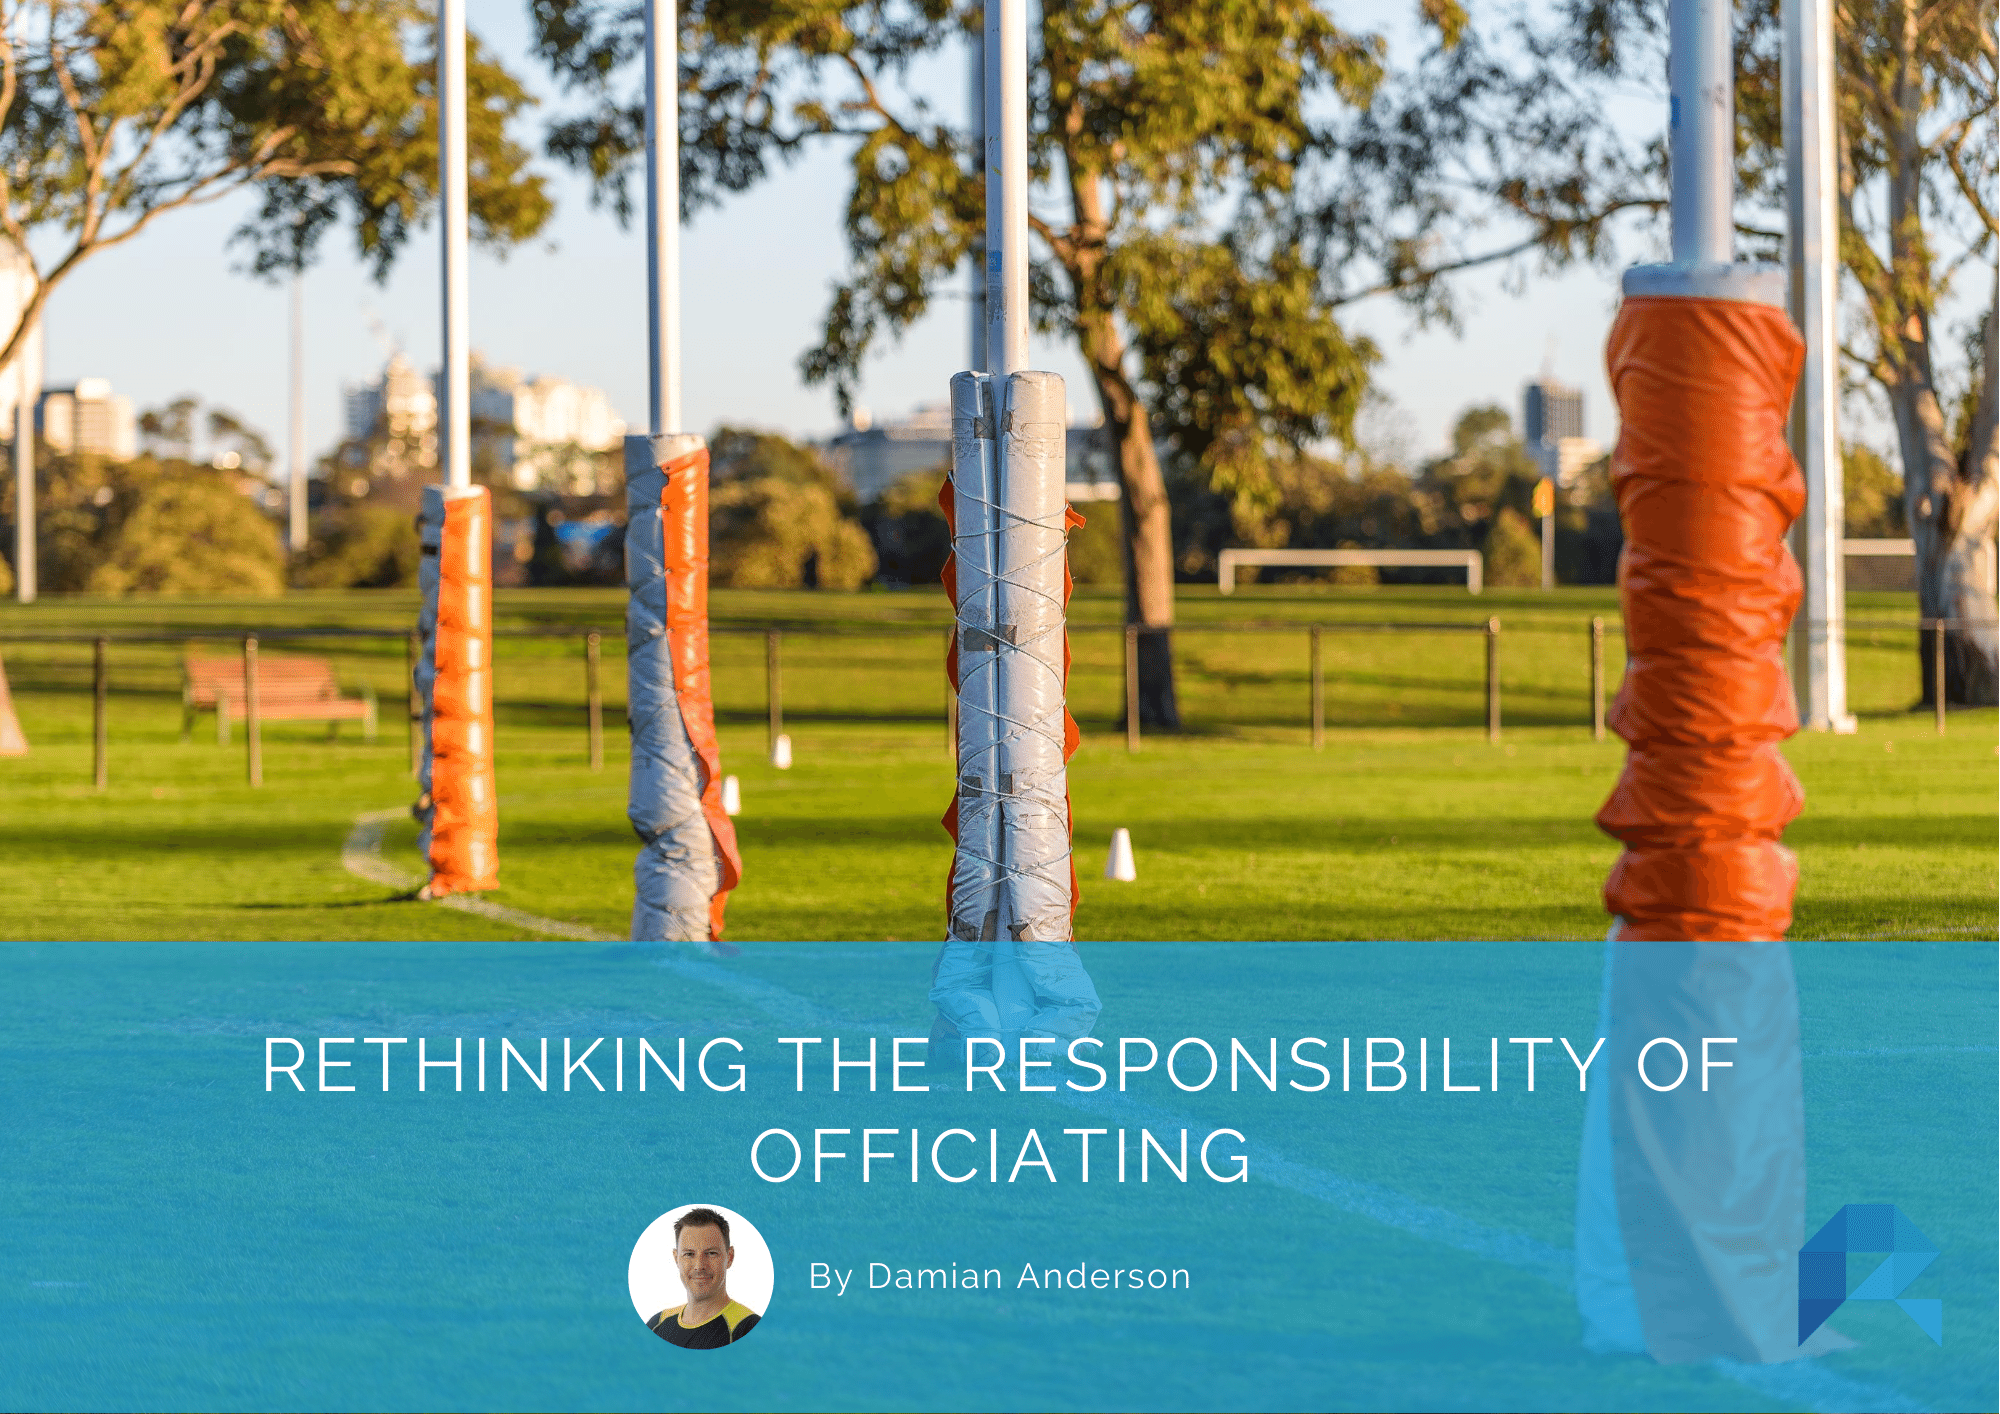 Rethinking the Responsibility of Officiating